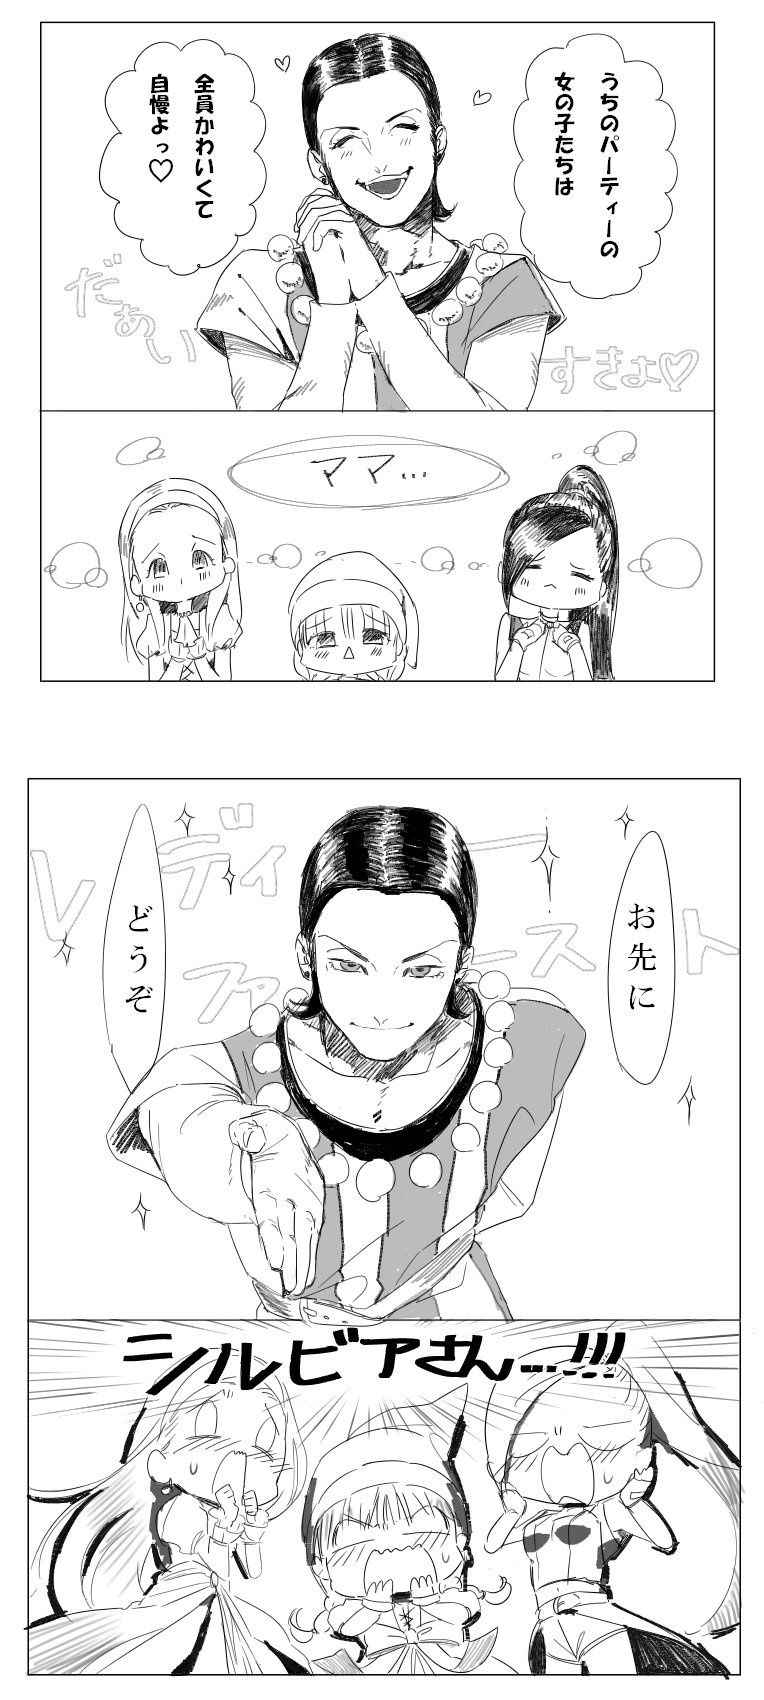 1boy 3girls 4koma black_border blush border comic dragon_quest dragon_quest_xi hands_clasped hat highres long_hair martina_(dq11) multiple_girls outstretched_arm own_hands_together ponytail puffy_short_sleeves puffy_sleeves senya_(dq11) short_sleeves smile sylvia_(dq11) toshikomachi translation_request triangle_mouth veronica_(dq11)